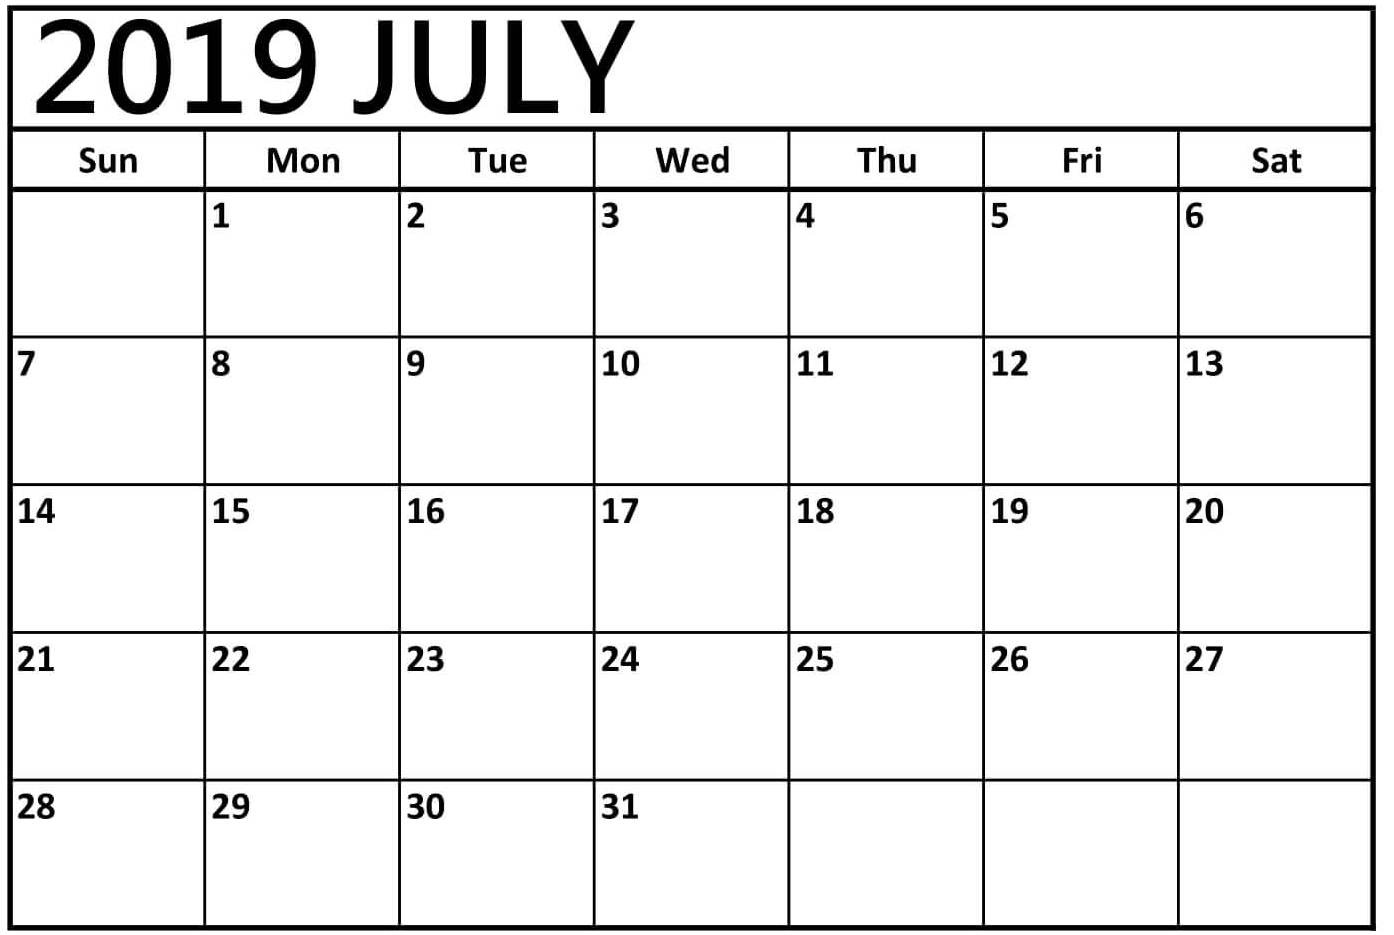 July 2019 Calendar with Holidays Dates